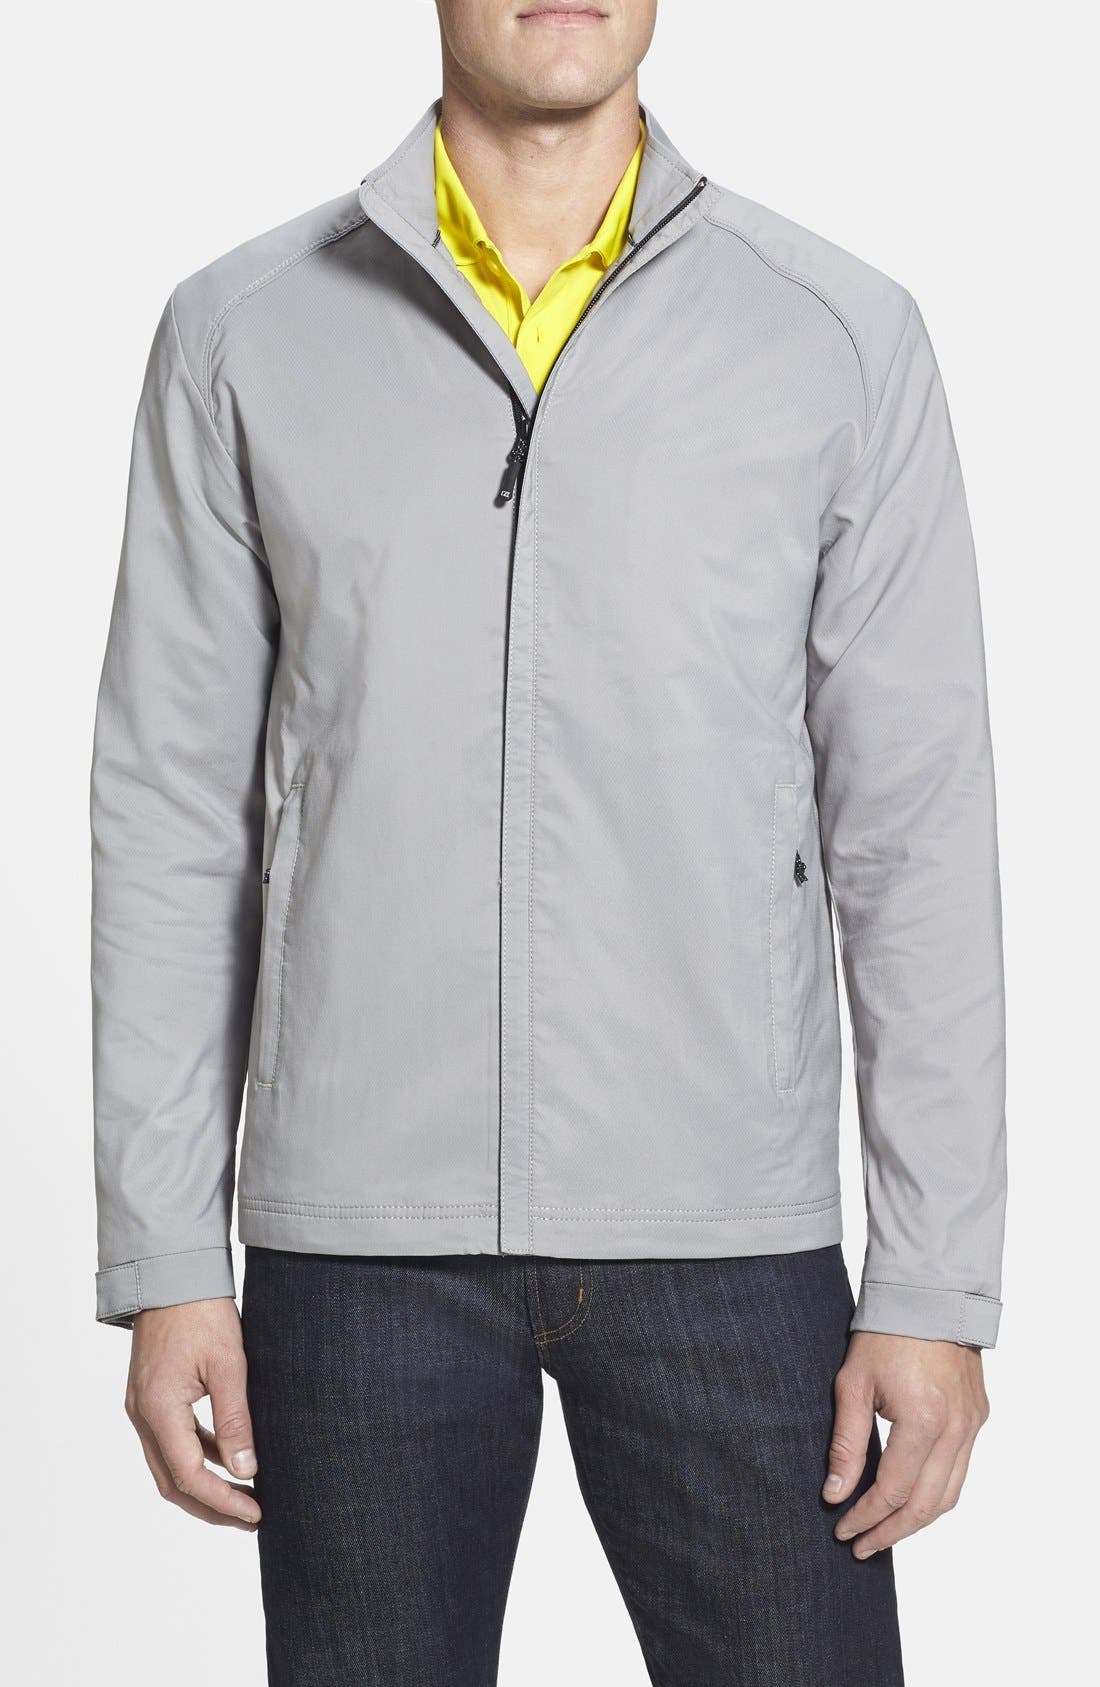 Blakely WeatherTec<sup>®</sup> Wind & Water Resistant Full Zip Jacket, Main, color, OXIDE GREY